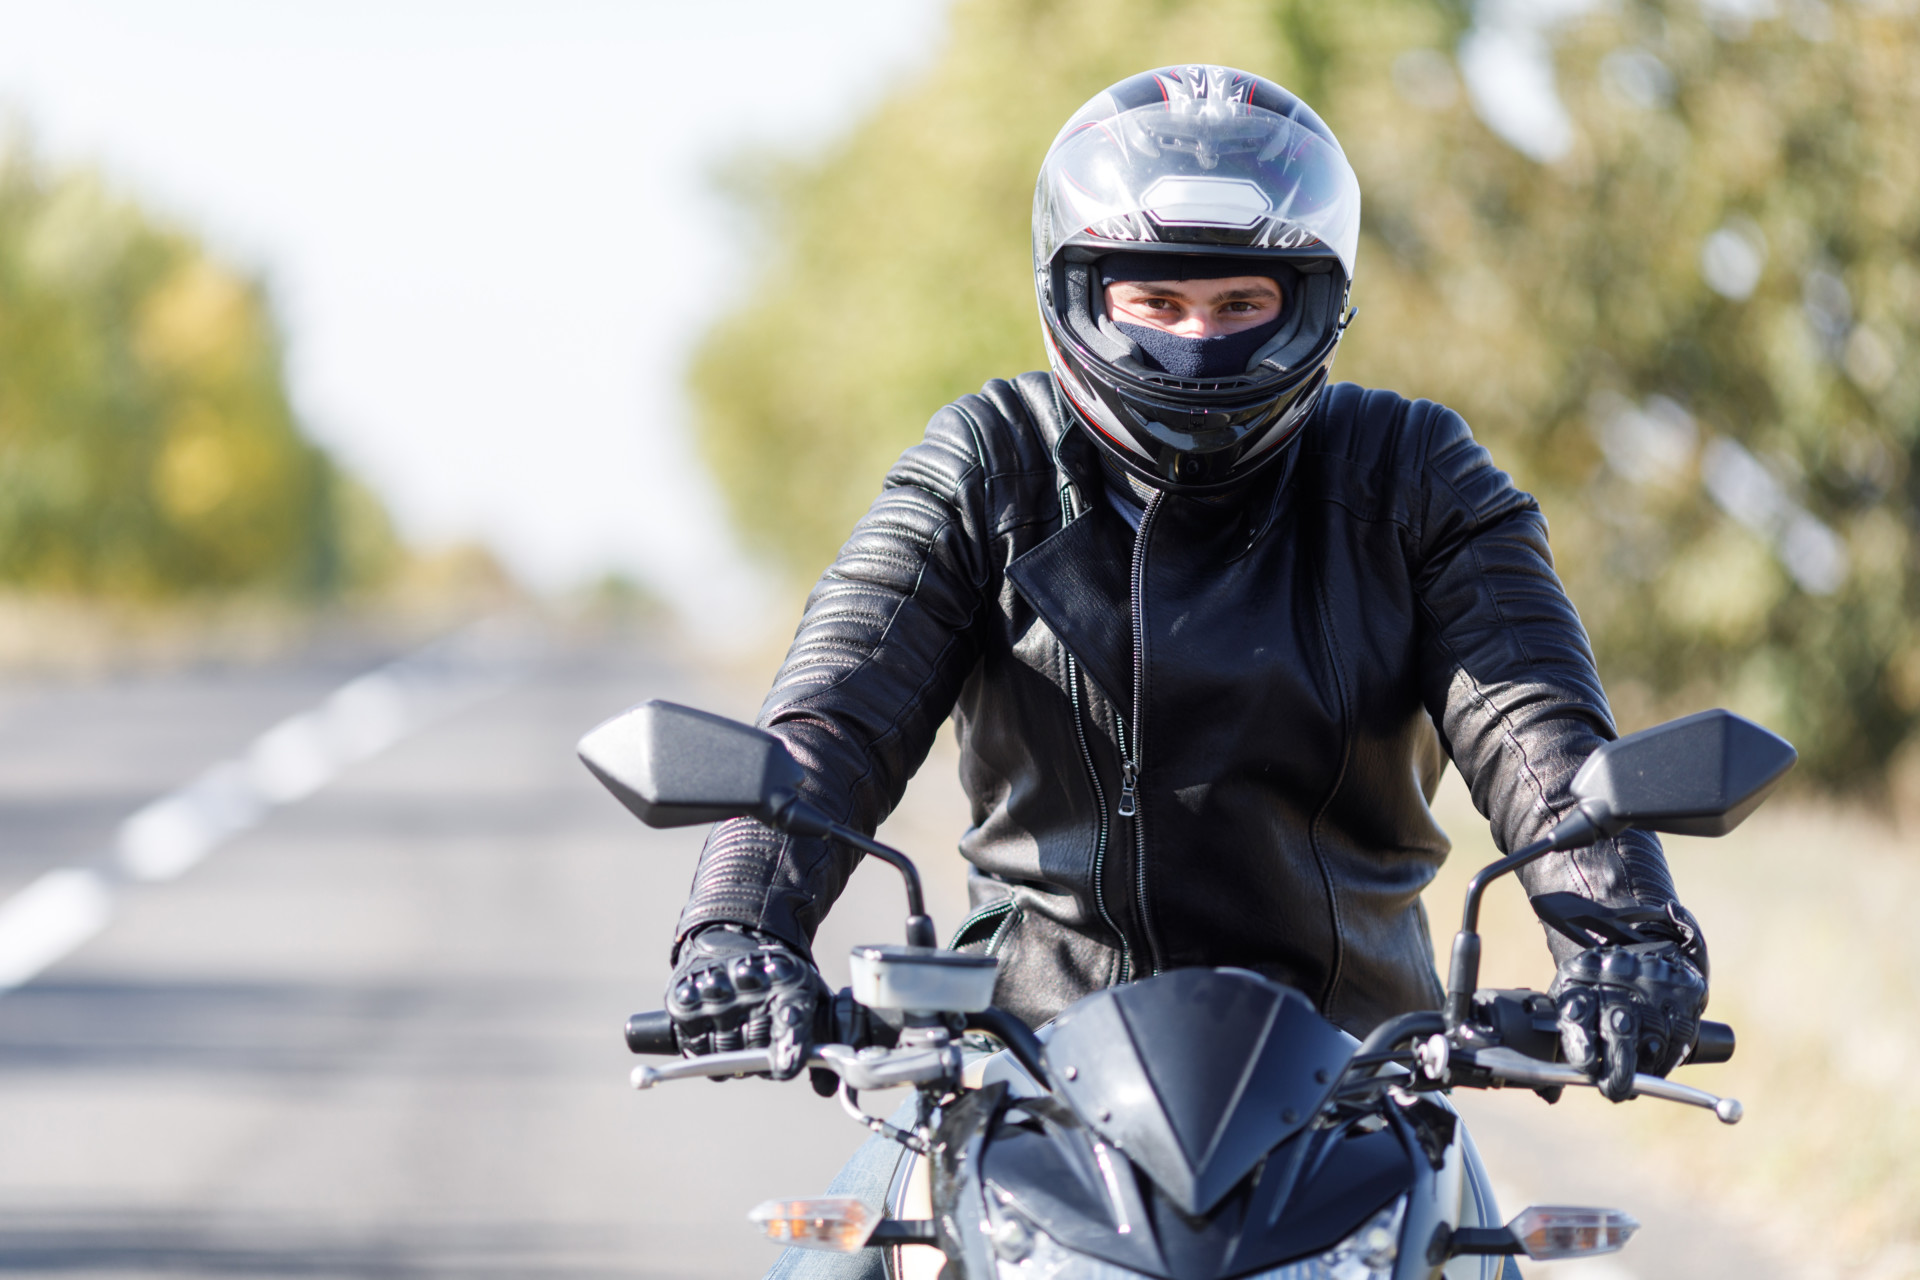 Motorcycle Driving School Maine Motorcycle Safety Course Schedule